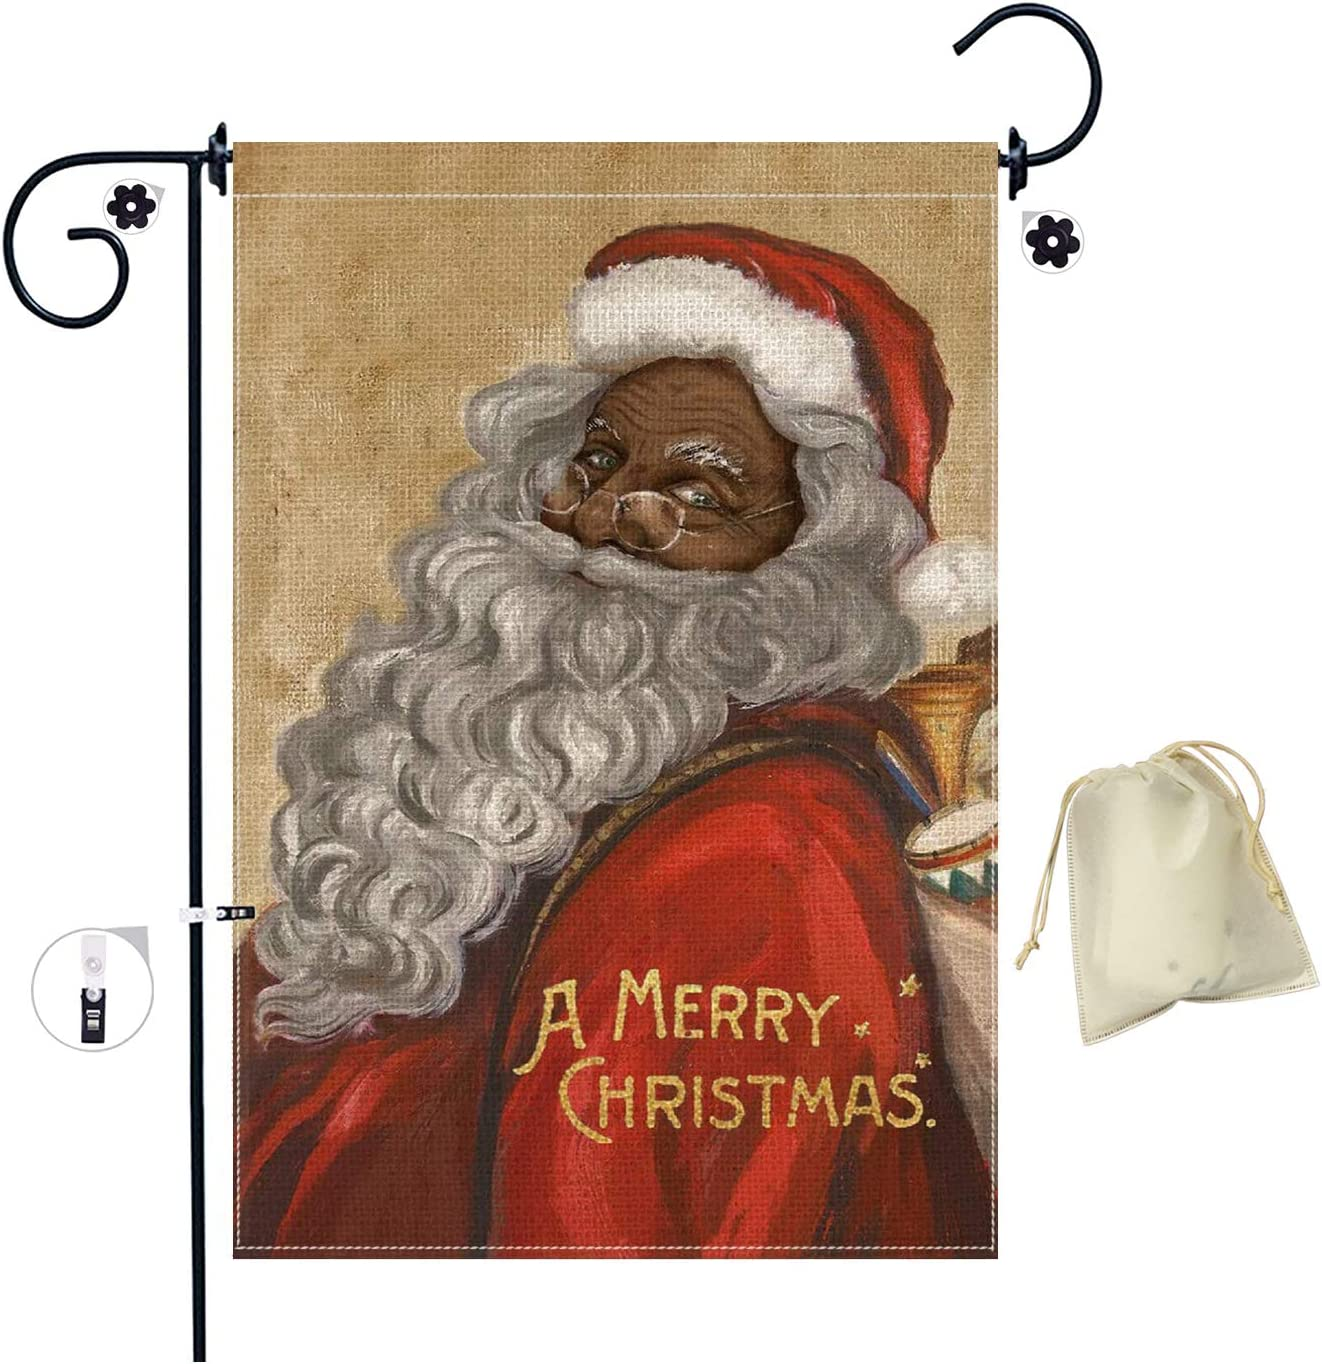 Christmas Garden Flags Double Sided, Black Santa Claus Christmas Garden Flags for Outside, Winter Holiday Christmas Yard Outdoor Decoration(18 x 12.5 inches)